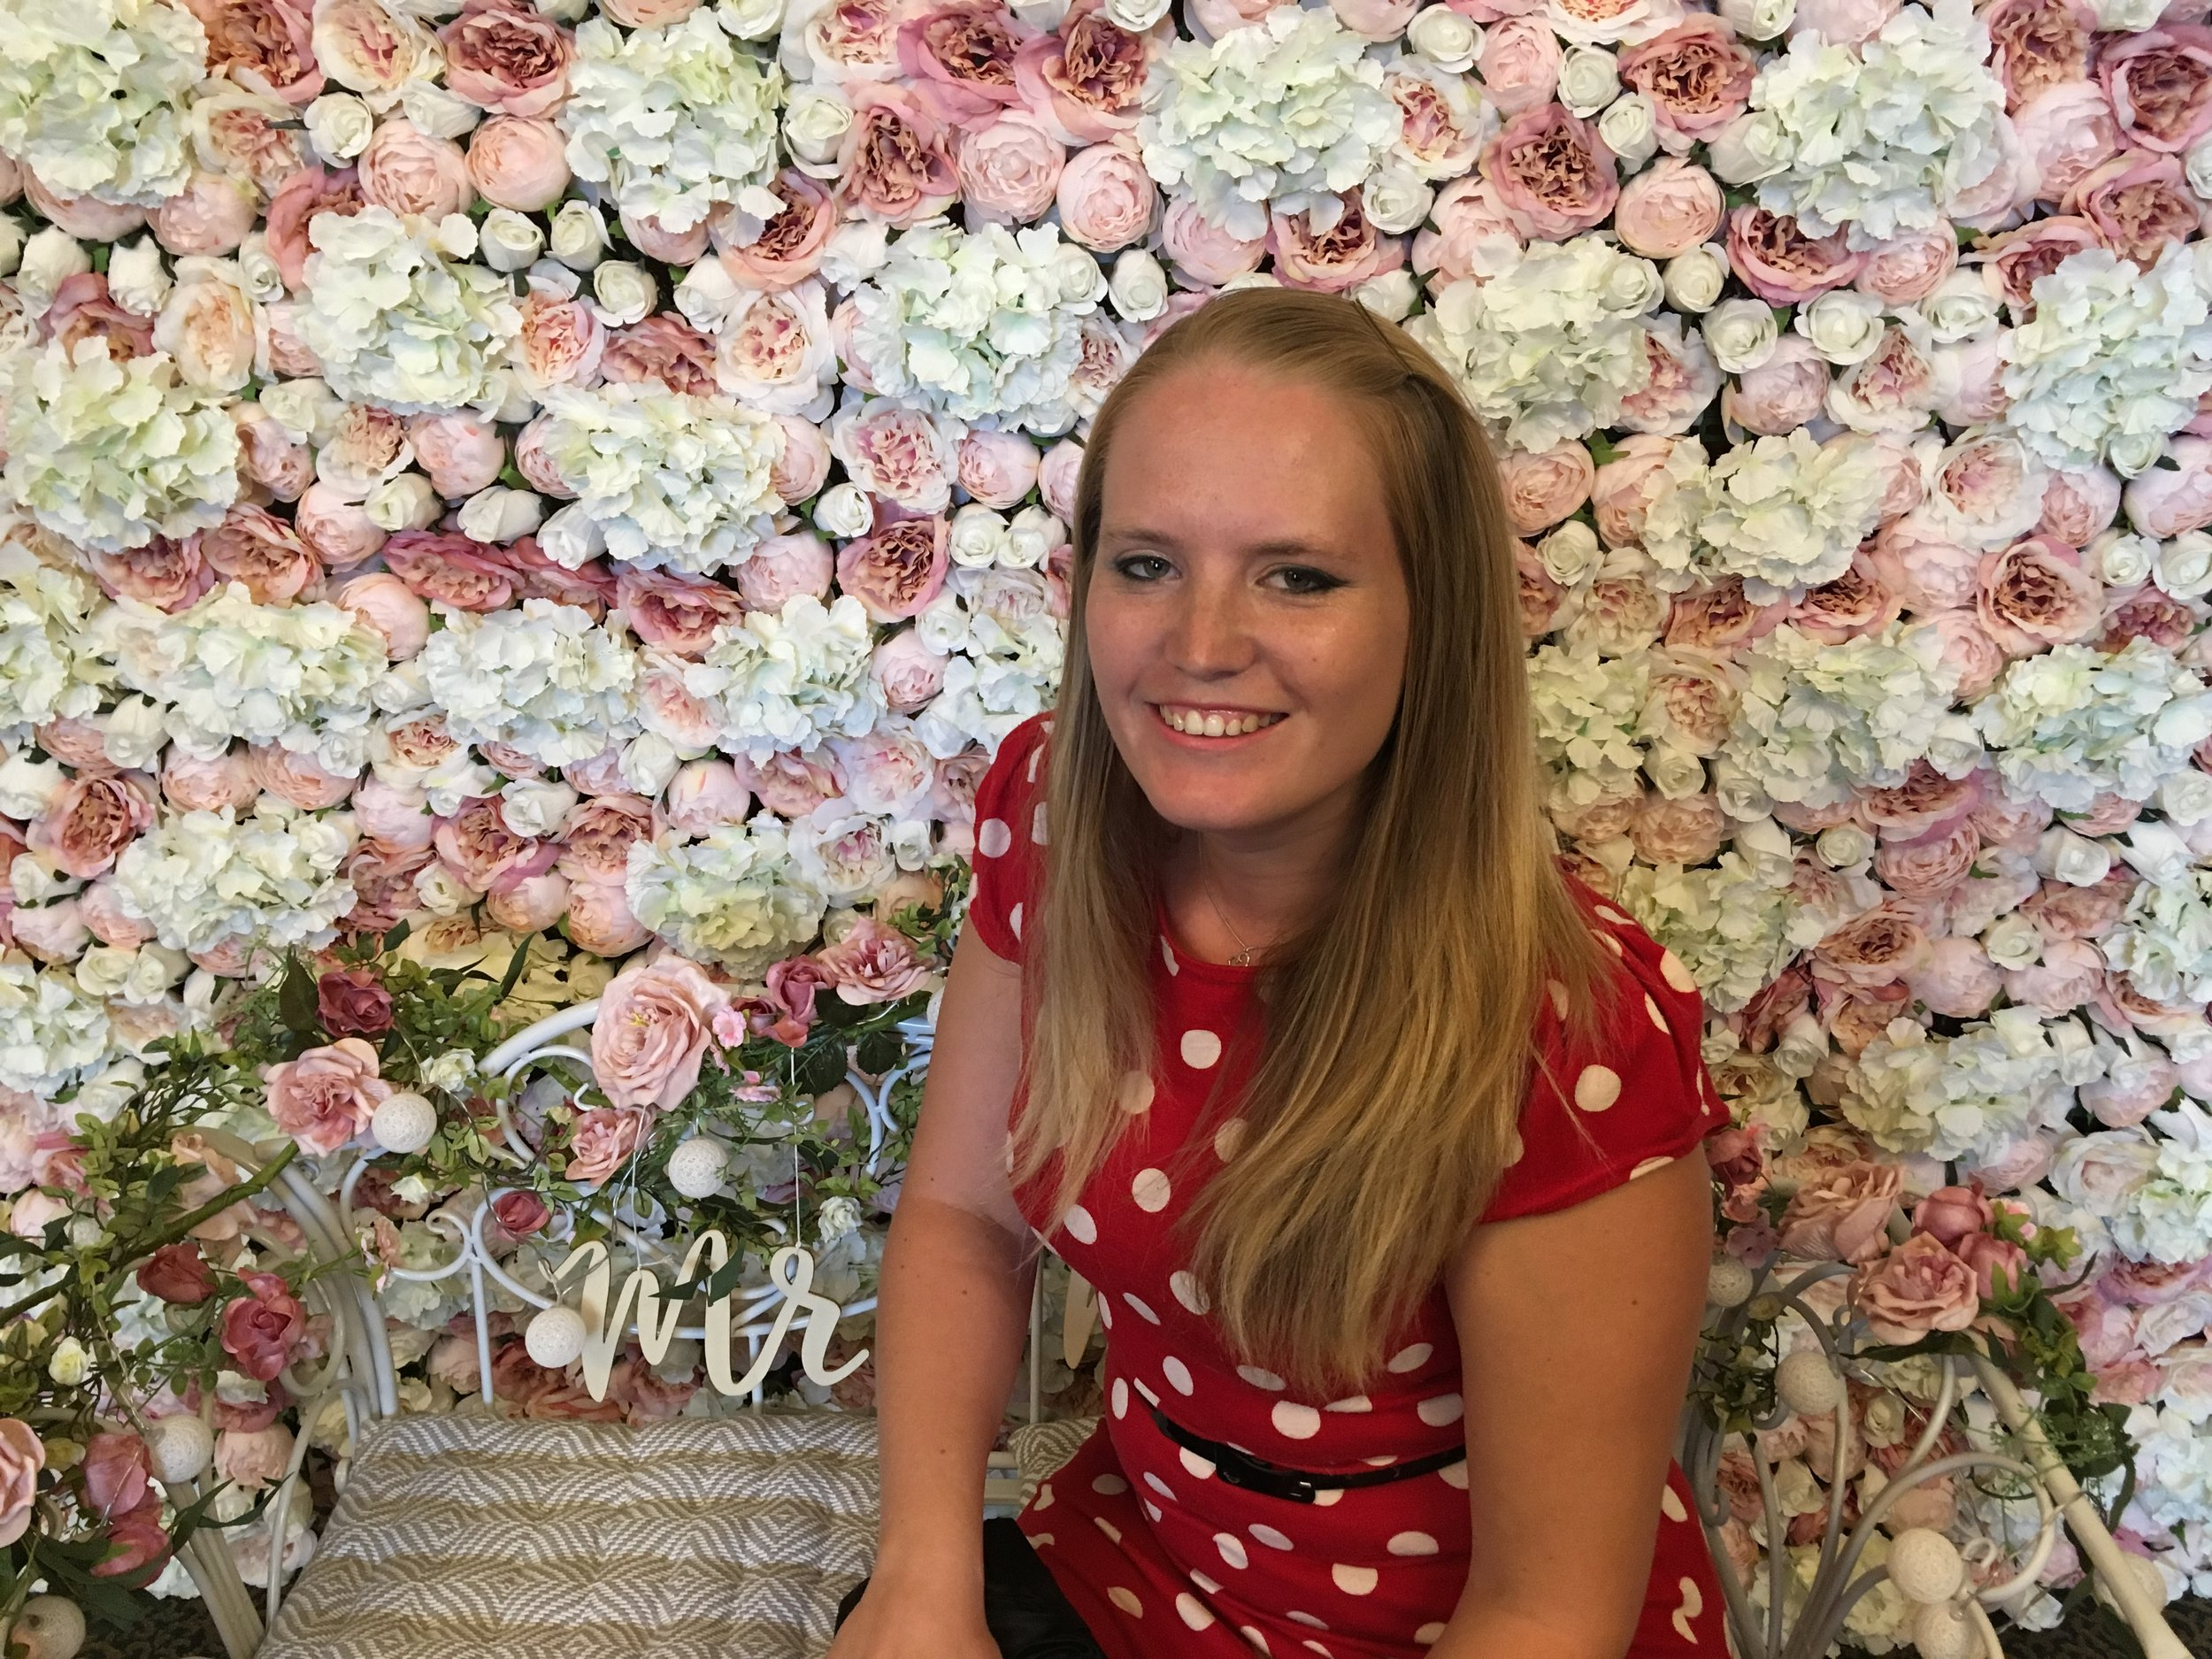 Becca Pountney Flower Wall Bedfordshire